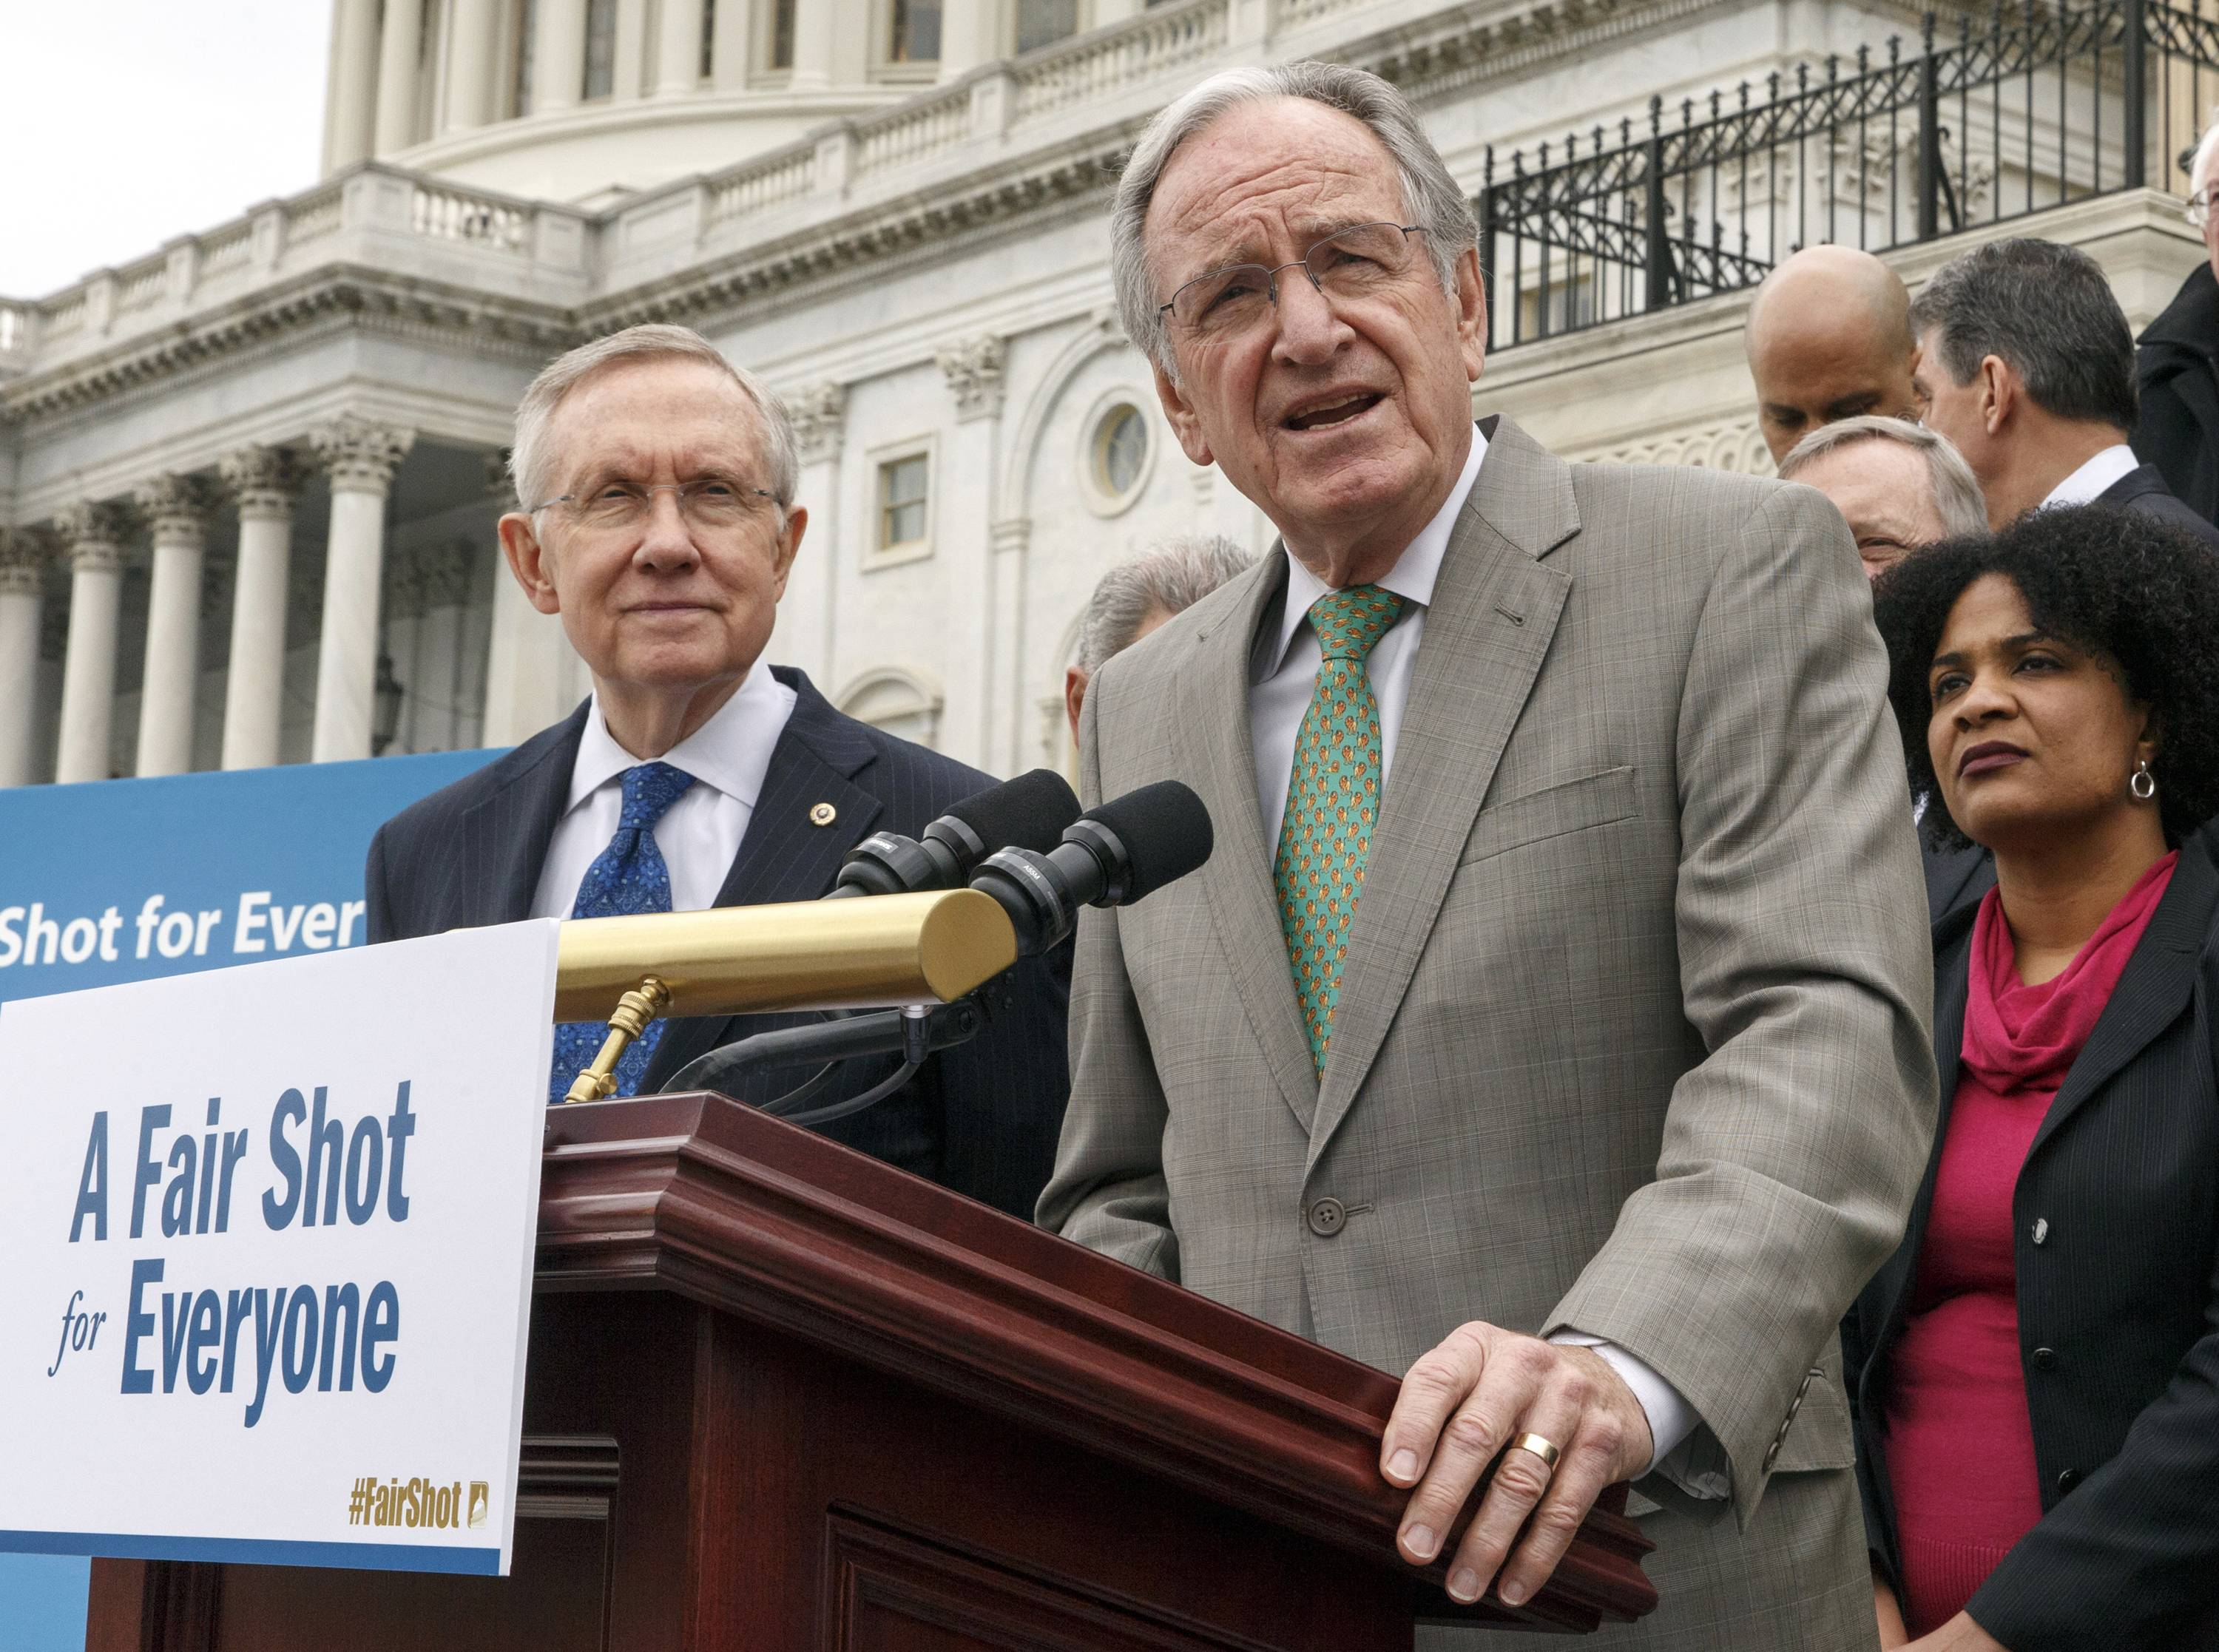 This April 2, 2014 file photo shows Senate Health, Education, Labor and Pensions Committee Chairman Sen. Tom Harkin, D-Iowa, right, accompanied by Senate Majority Leader Harry Reid of Nev., left, and others, urging approval for raising the minimum wage, during a news conference on Capitol Hill in Washington. When the Senate debates a Democratic proposal to raise the federal minimum wage, some workers won't benefit even if lightning strikes and the long-shot effort prevails.